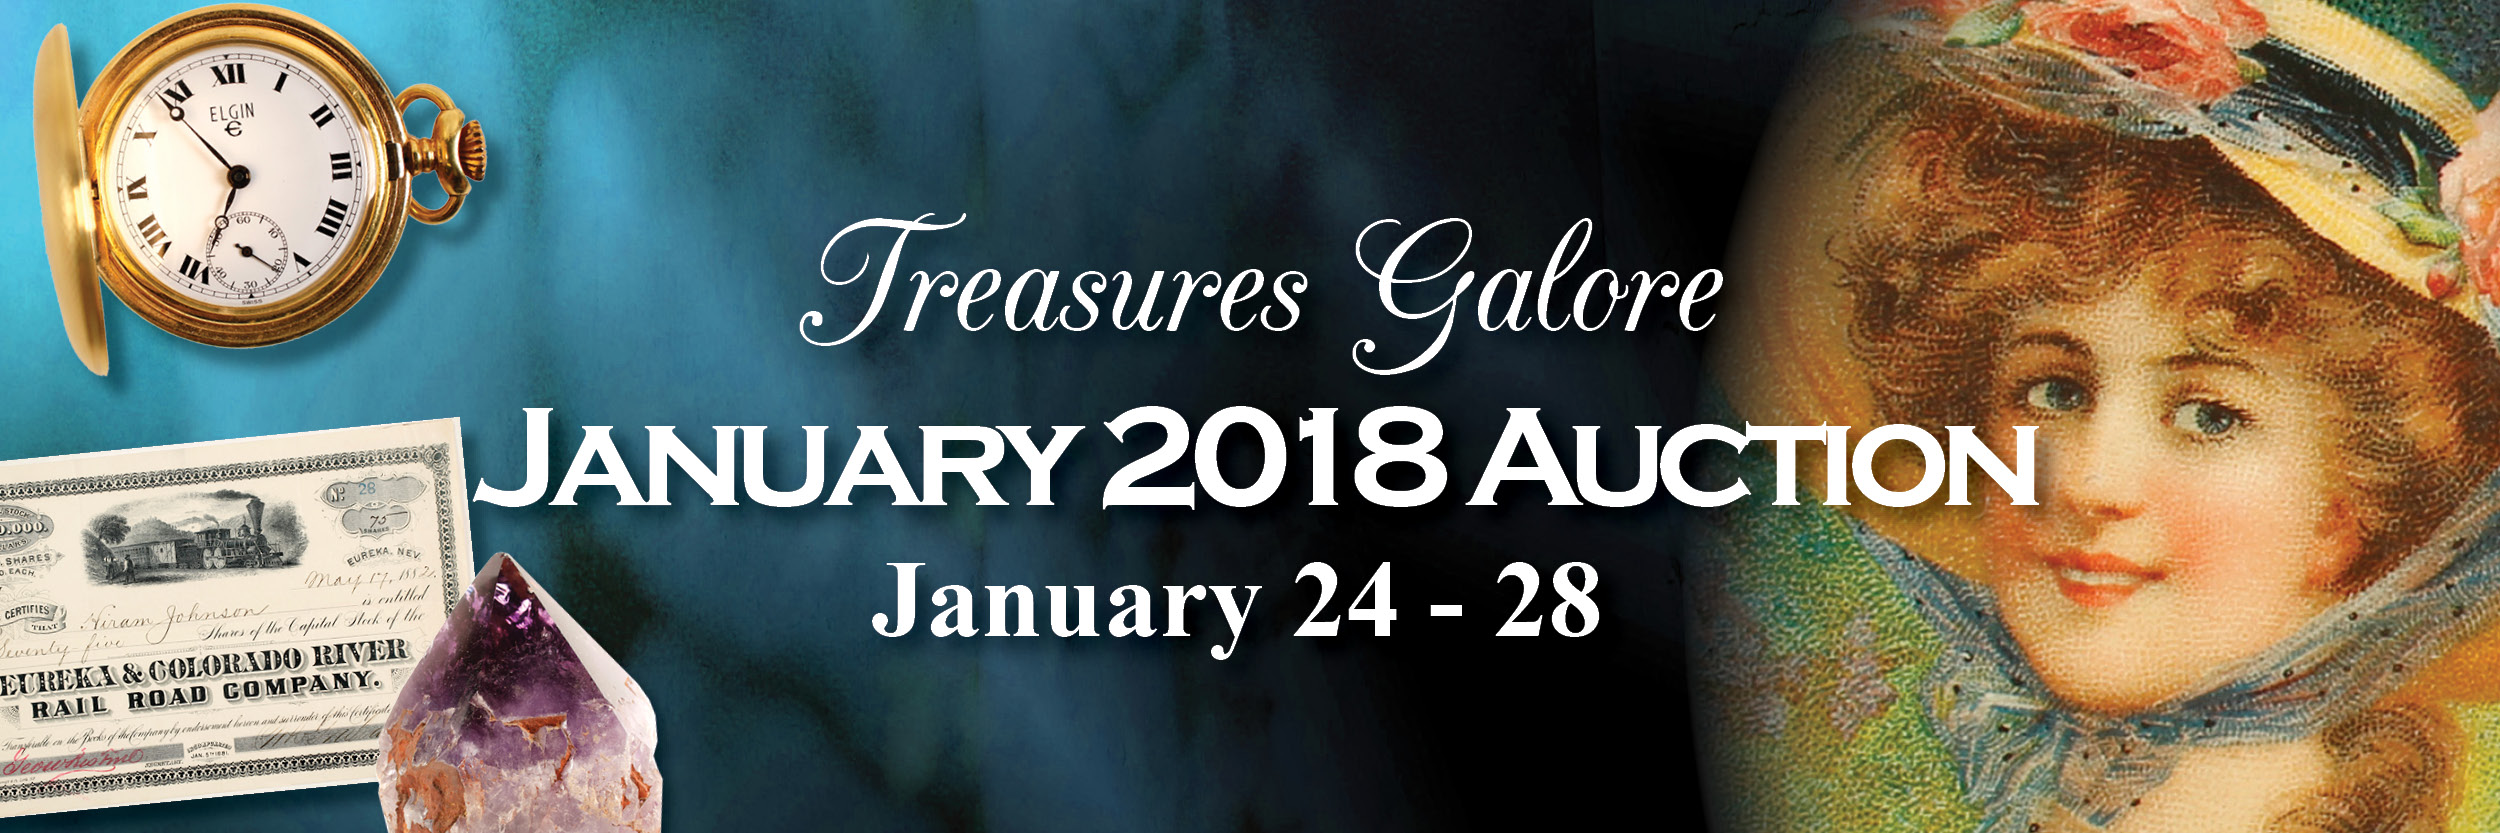 January 2019 Auction